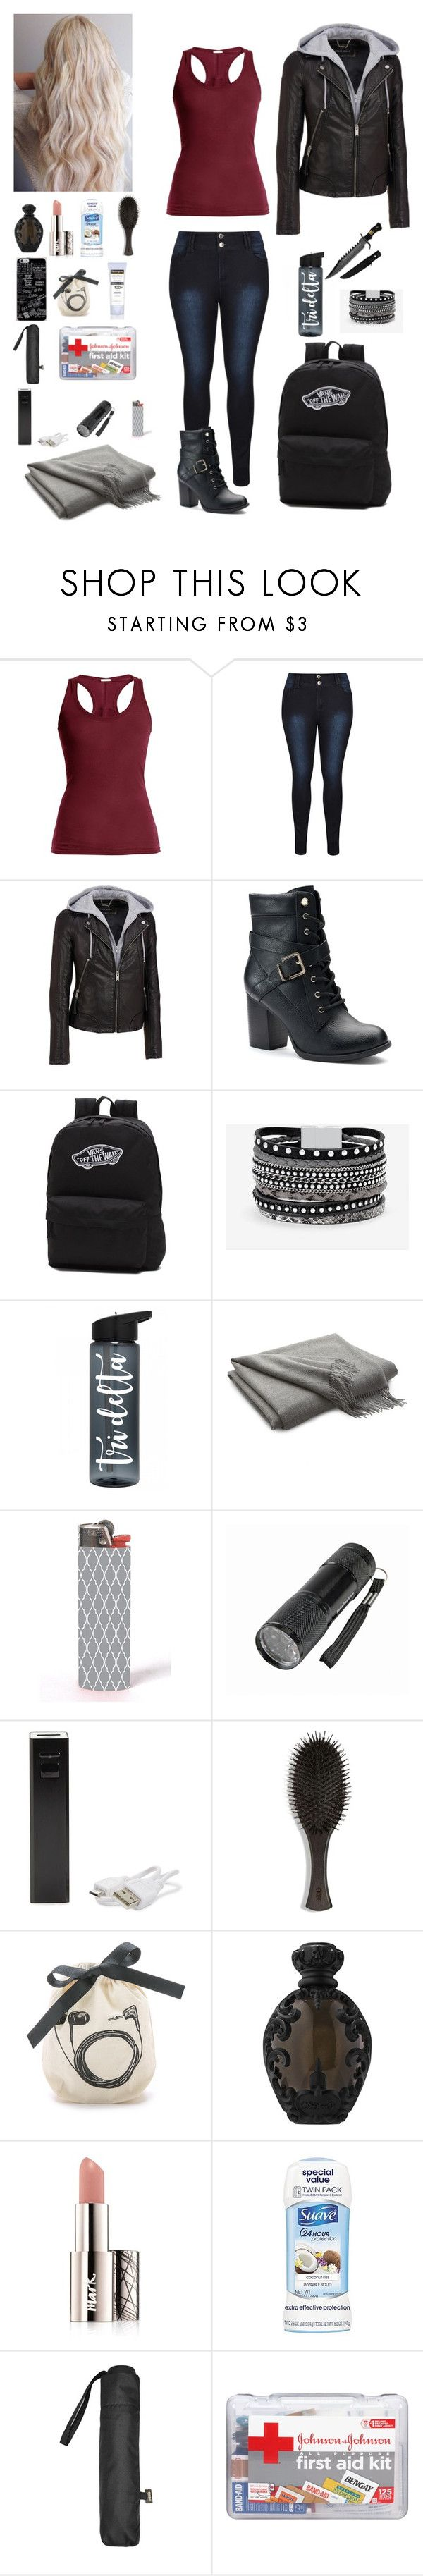 """Camping"" by frostwoods ❤ liked on Polyvore featuring Skin, Wilsons Leather, Apt. 9, Vans, White House Black Market, Crate and Barrel, LMNT, Oribe, Bag-All and Kat Von D"